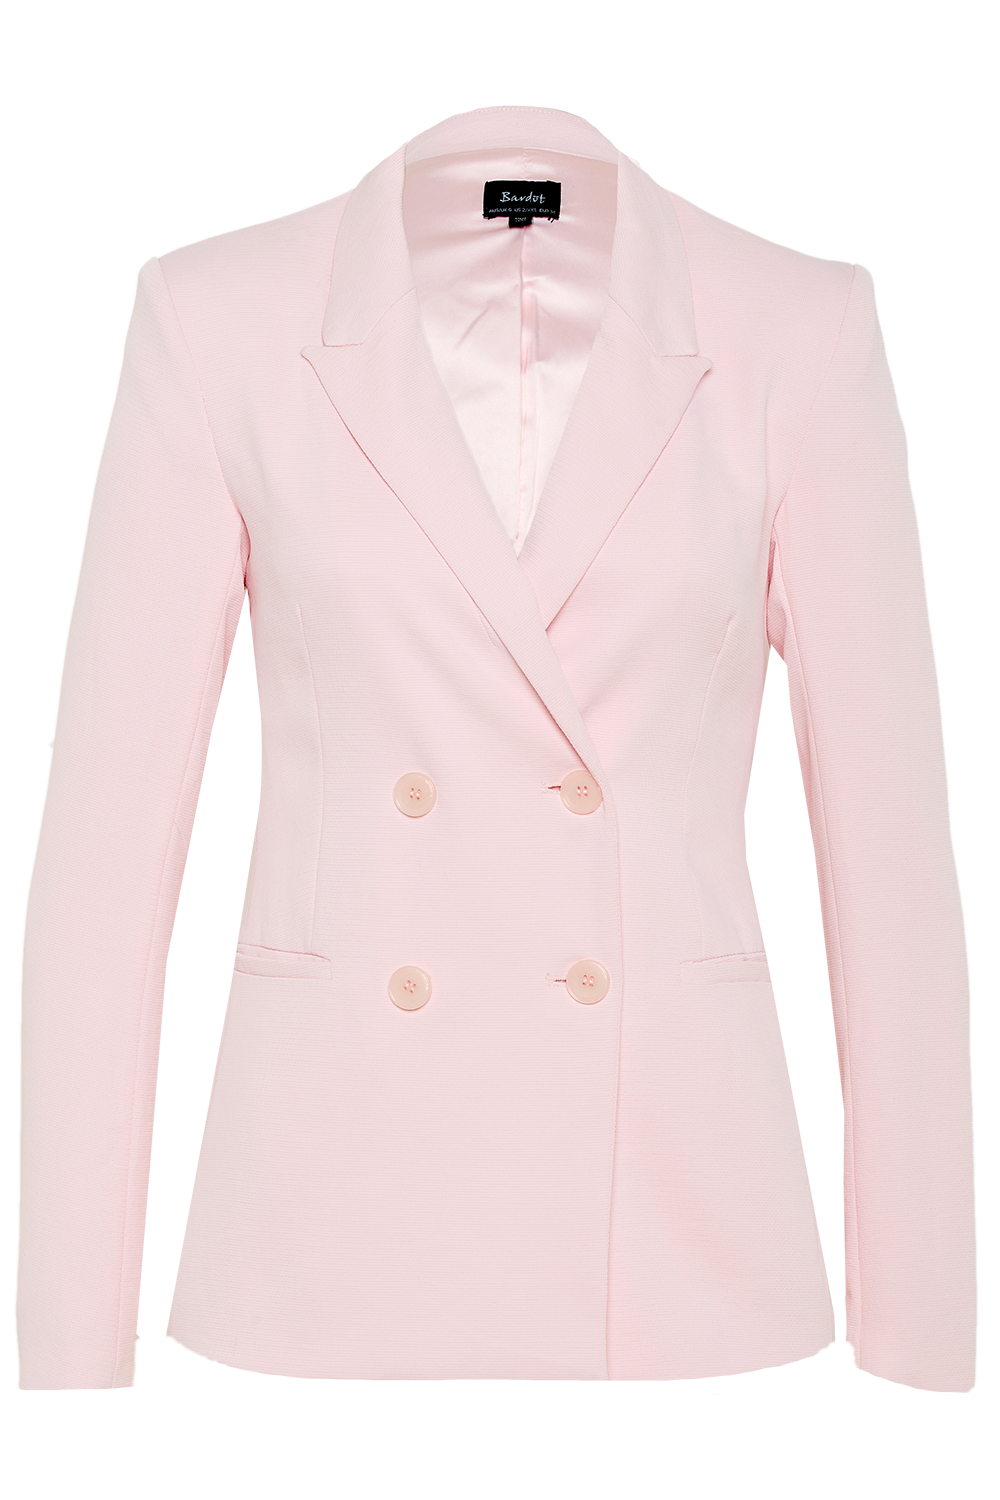 PARISIENNE BLAZER in colour BLUSHING BRIDE